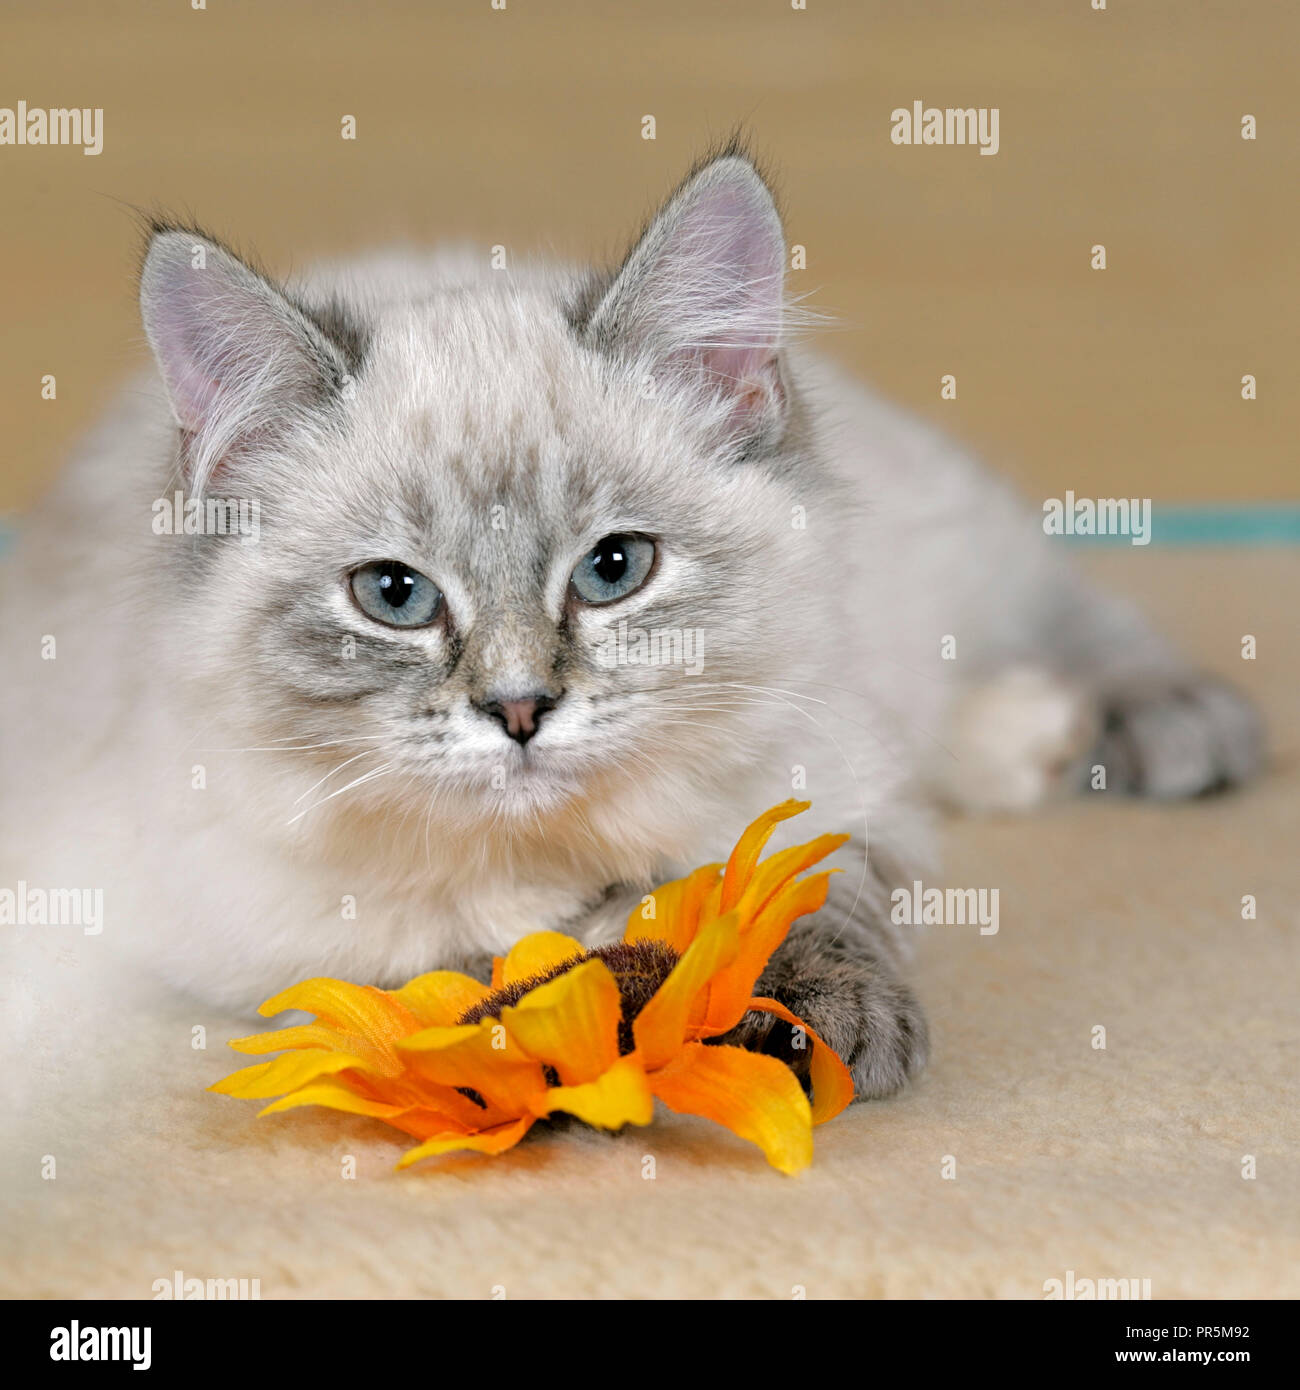 Cute tabby  Kitten, playing with flower in house, - Stock Image